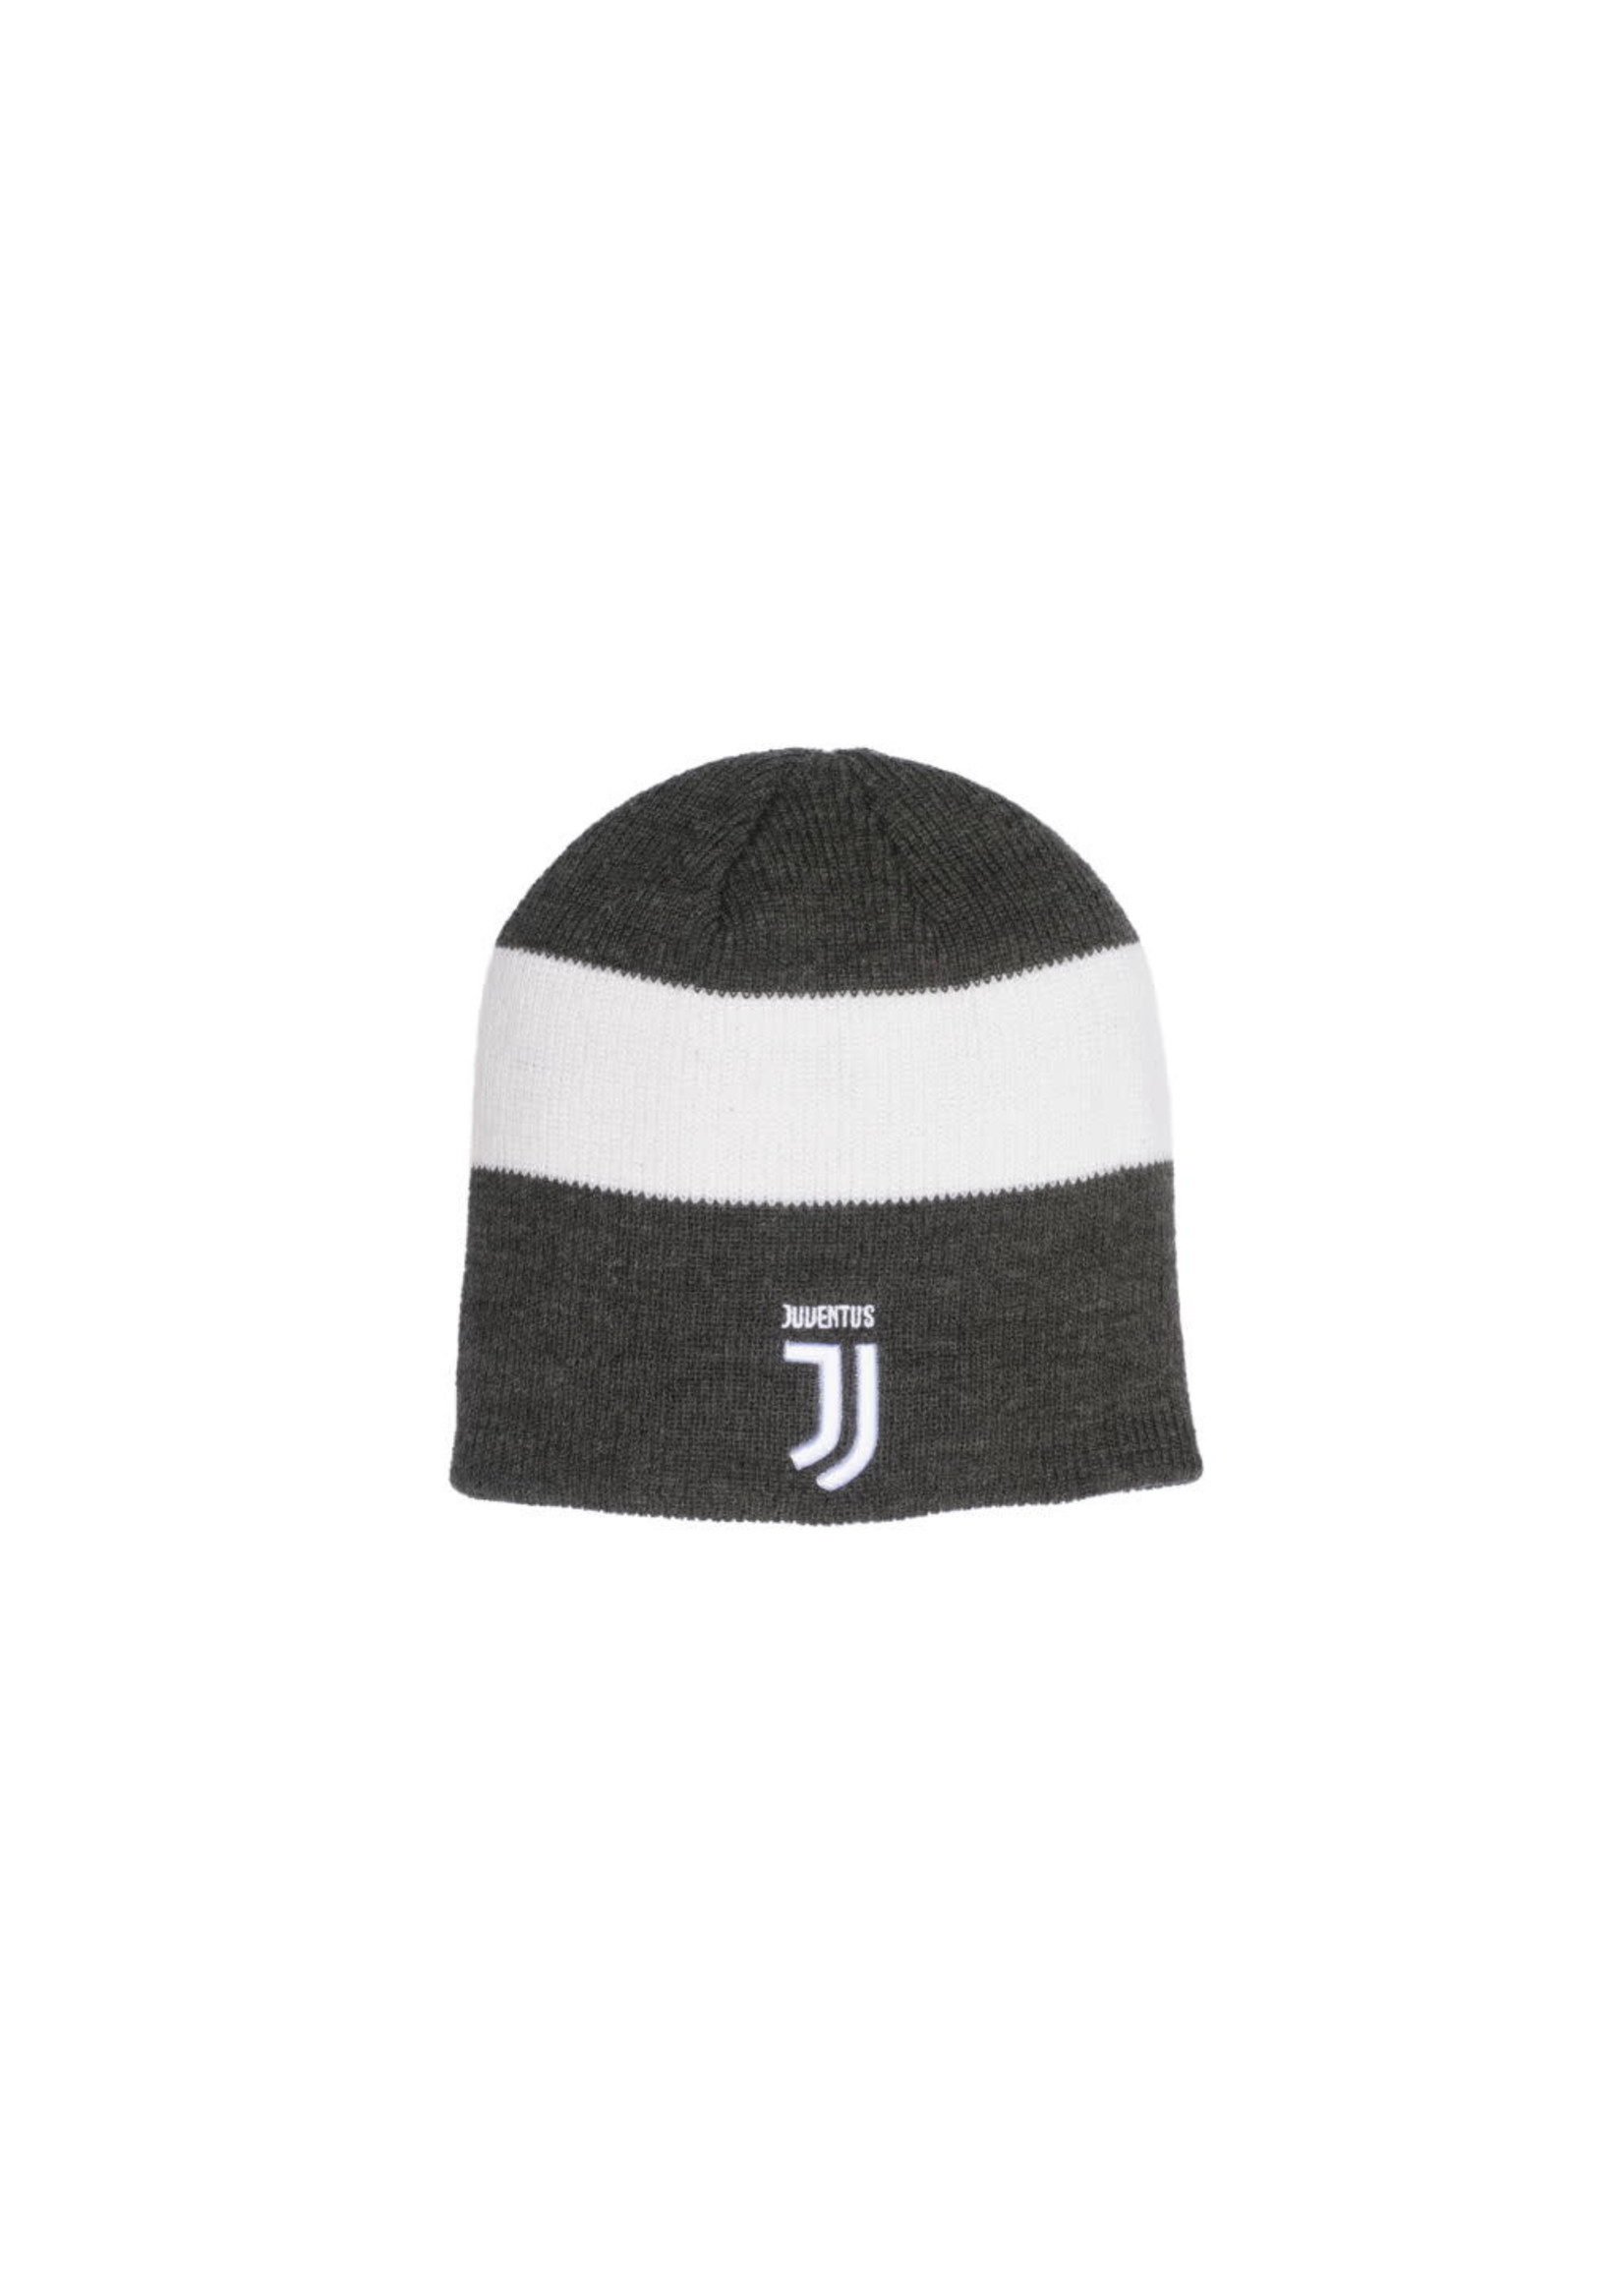 FURY KNIT BEANIE (FI-COLLECTION)